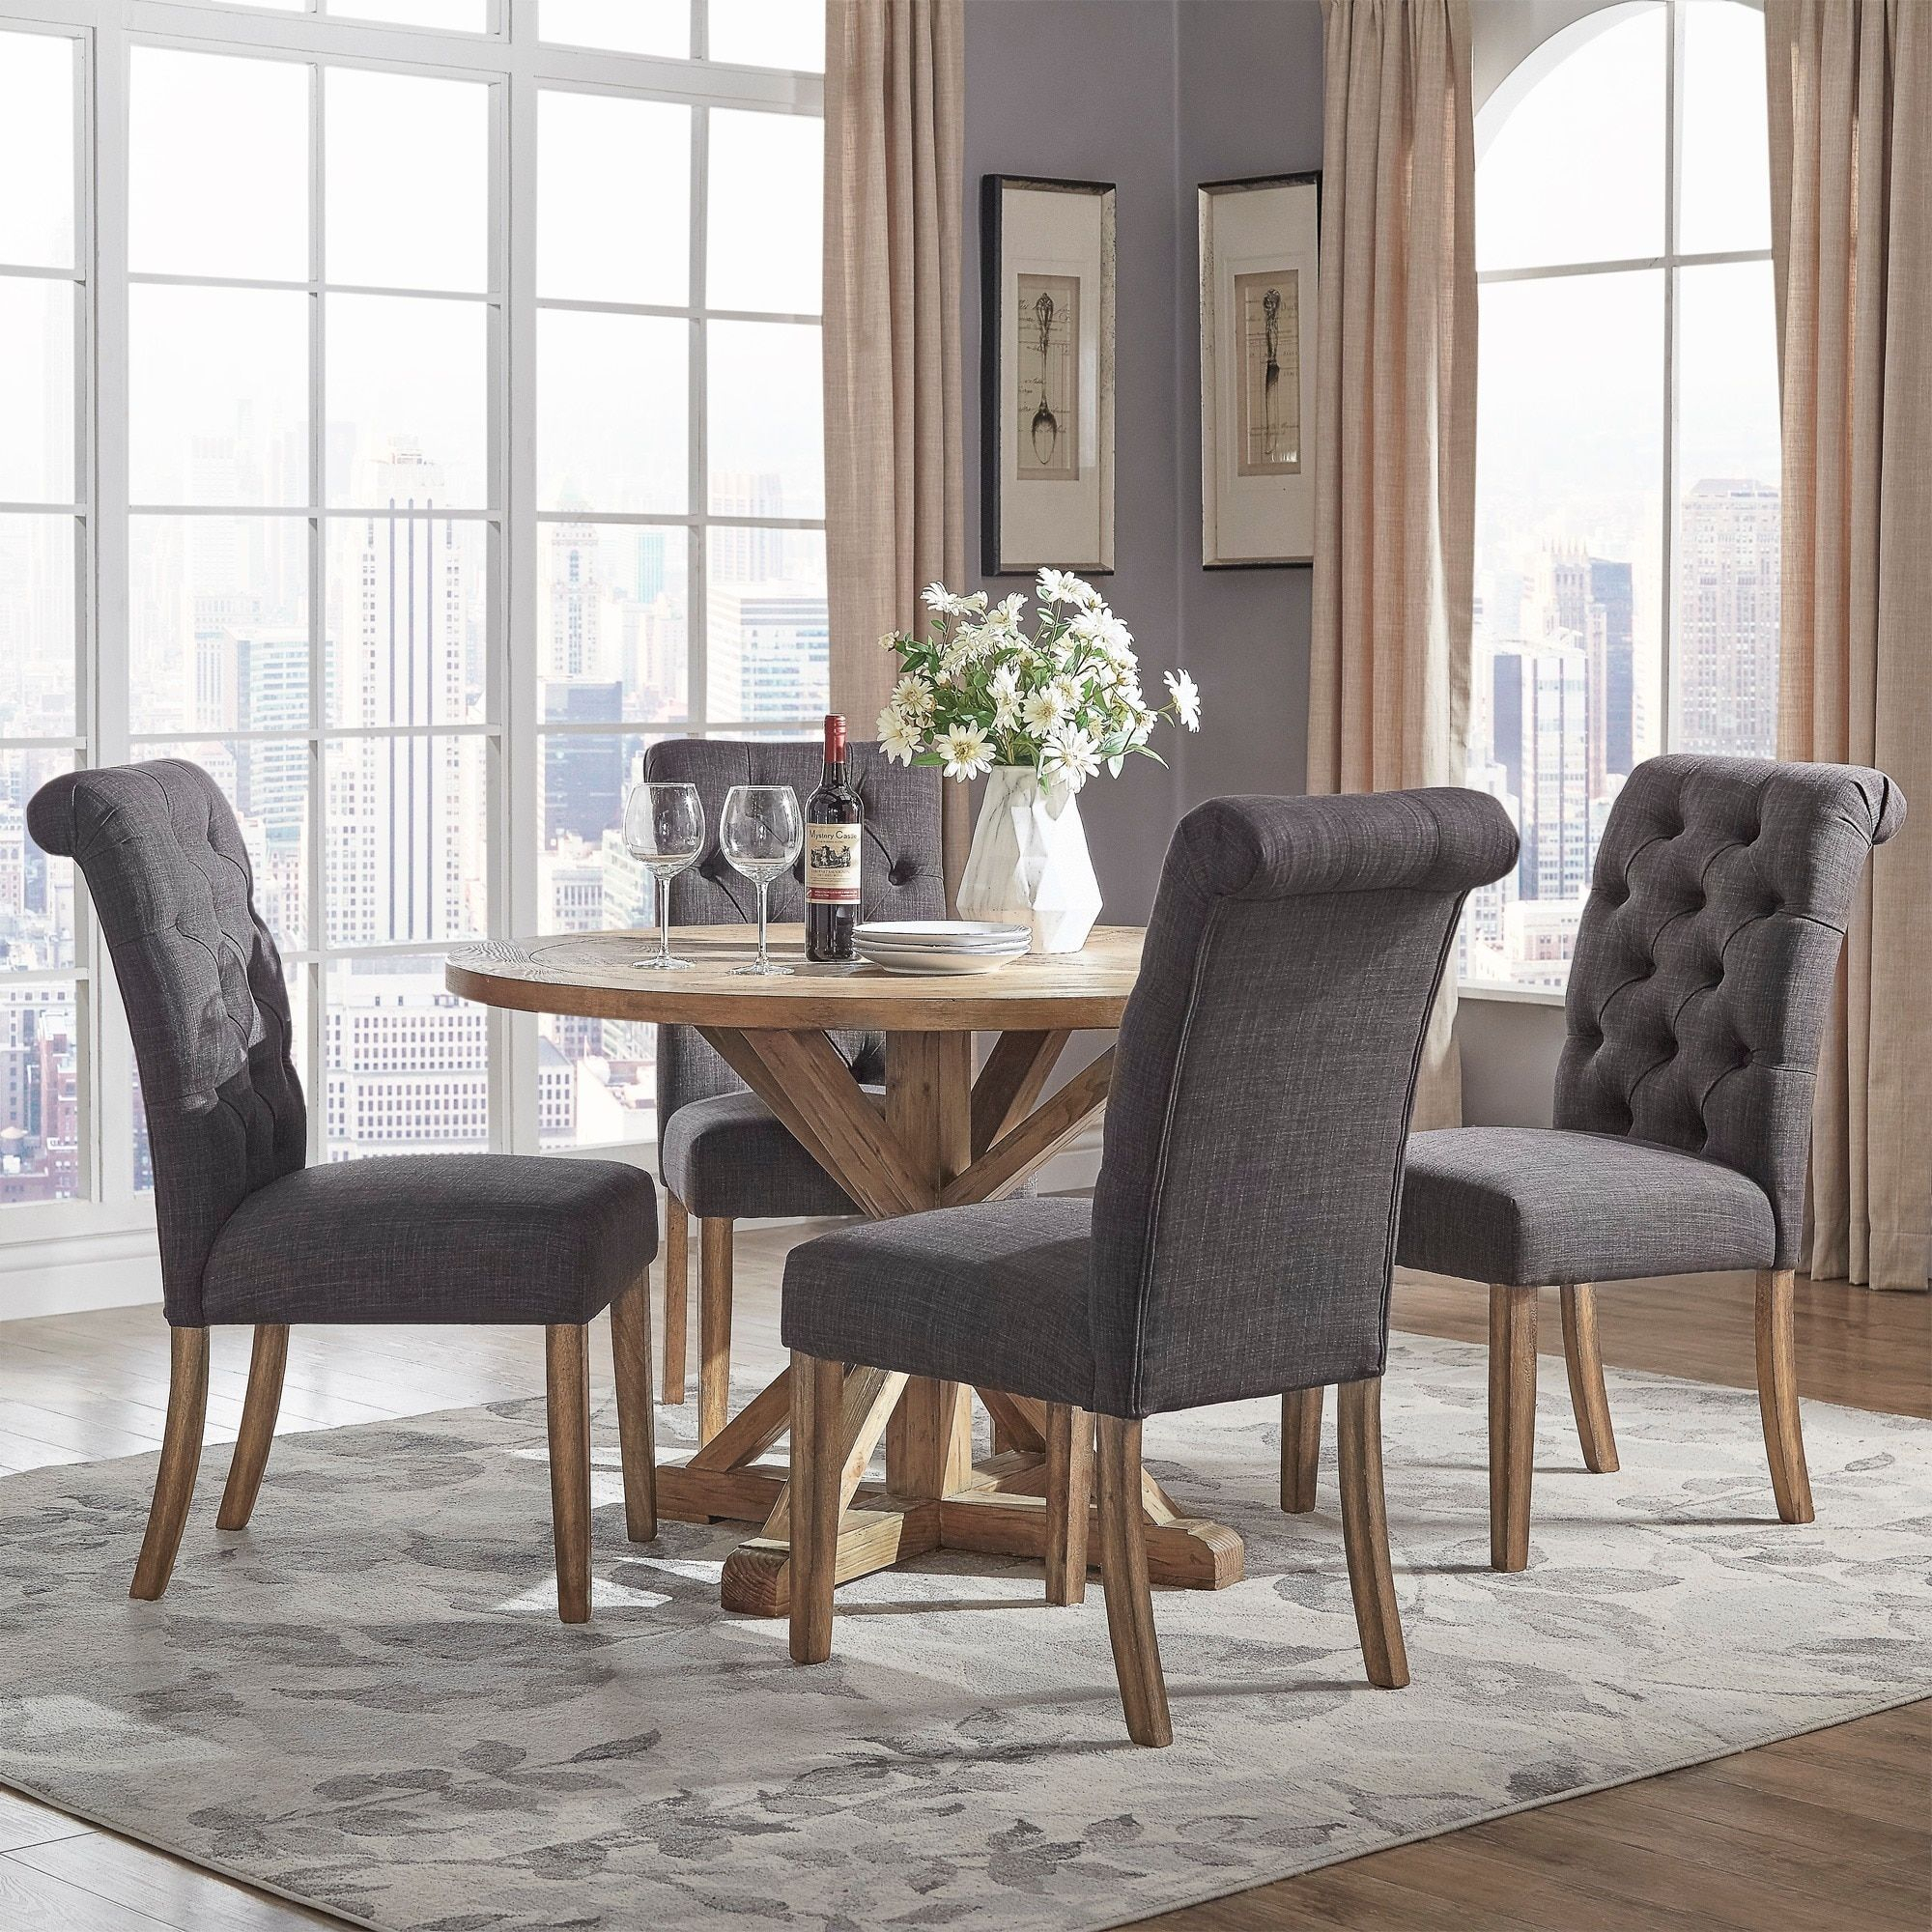 Benchwright Rustic X Base 48 Inch Round Dining Table Set Pertaining To 2017 Benchwright Round Pedestal Dining Tables (View 17 of 25)